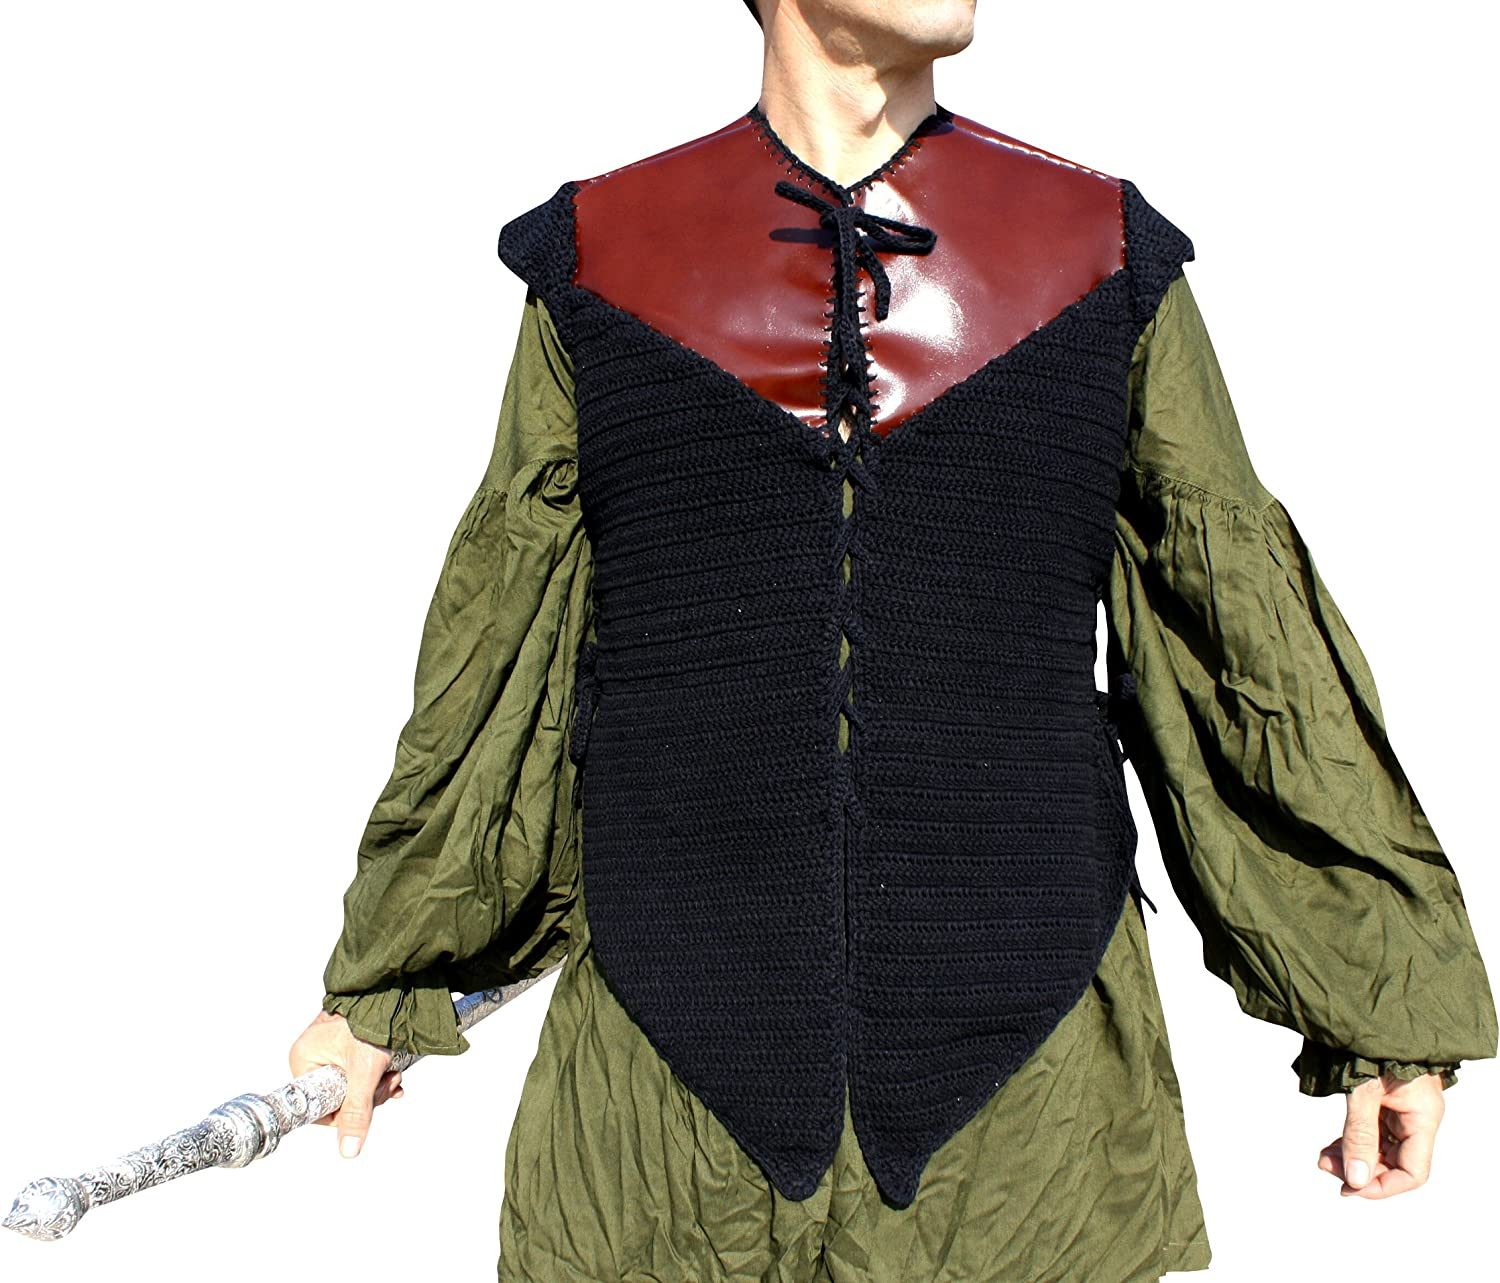 Svenine Crochet Cotton Pirate Doublet Shirt with Thick Leather Shoulder Sections